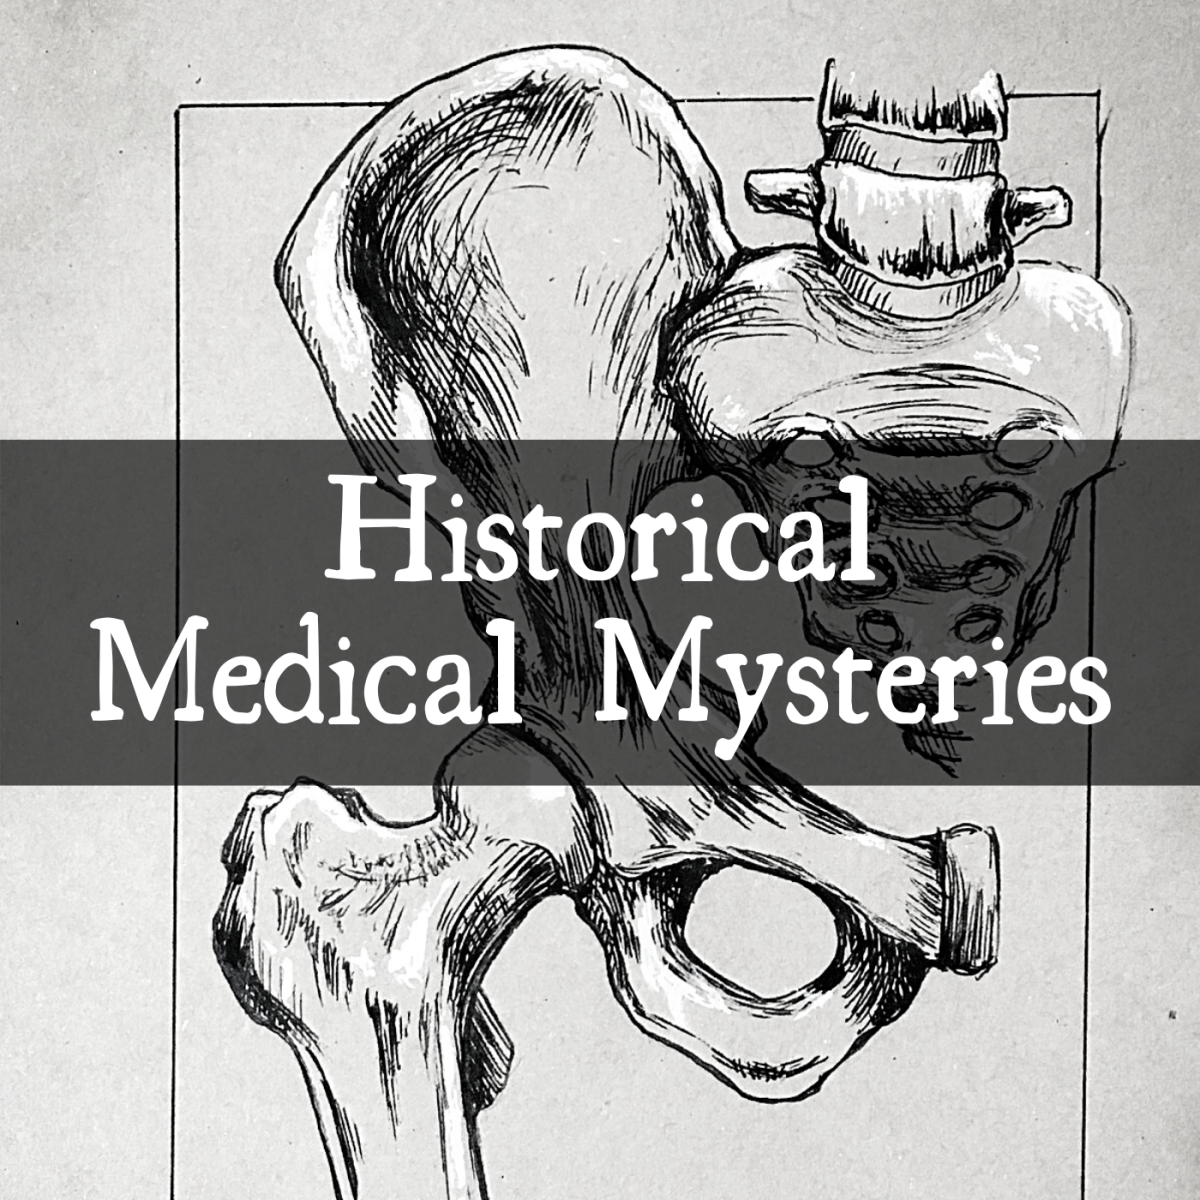 4 Weird Medical Mysteries From History